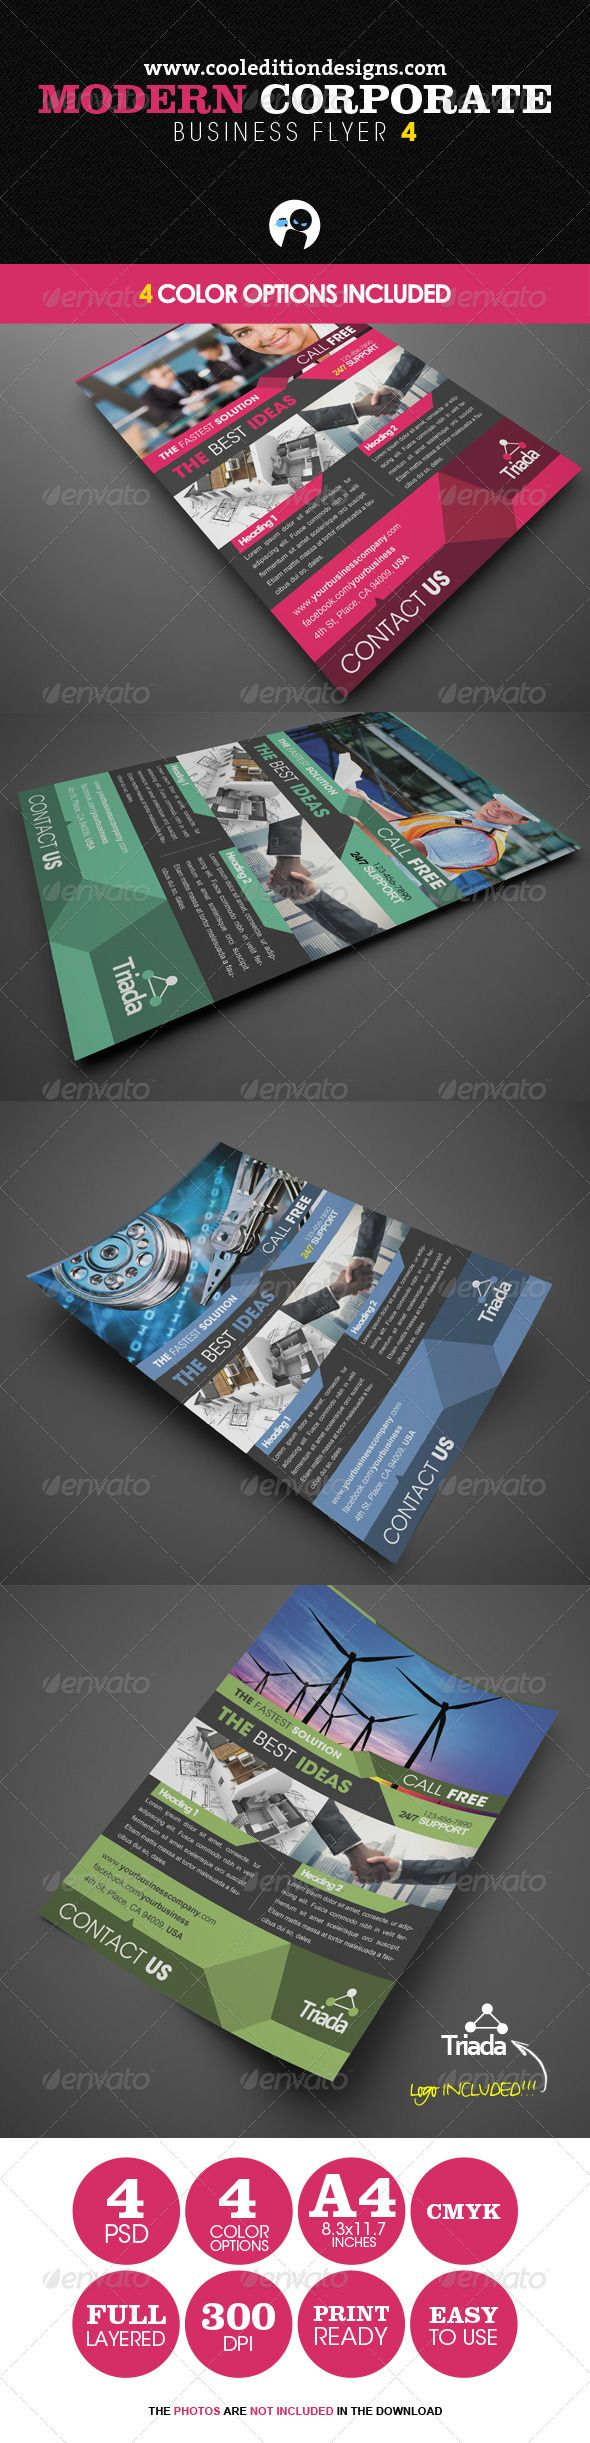 "Modern Corporate Business Flyer 4  #GraphicRiver             	 Impress your clients with this Professional, Modern and Corporate flyer for your business.  	 The download file contains  	 4 PSD layered files – Dimensions: A4 8.3""x11.7"" (8.5""x11.9"" Bleeds)  	 4 Color Options  	 Quick and Easy to edit  	 Full Layered  	 300 DPI  	 CMYK  	 Print Ready  	 A info file named ""Instructions and Info""  	 A JPEG with instructions to rate the file  	 These are the fonts used in the design:  	 1. Arial…"